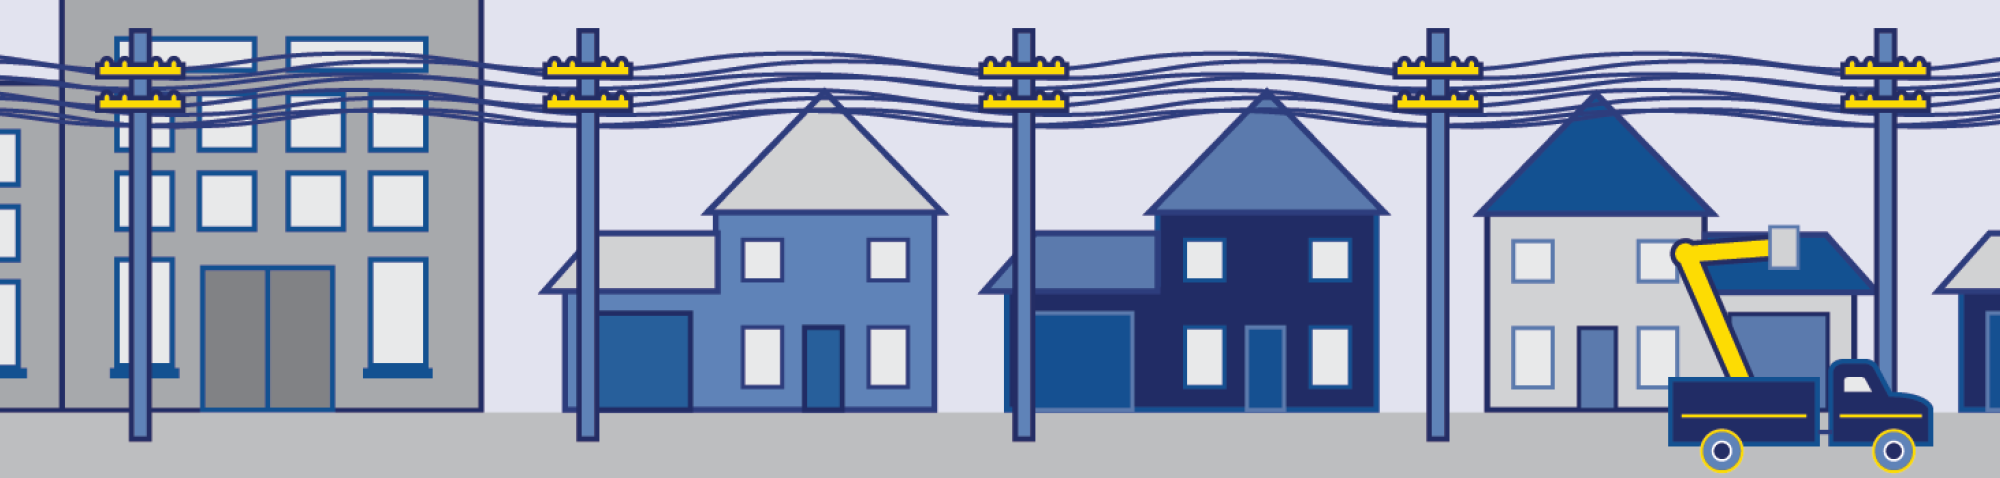 Illustration of homes and powerlines